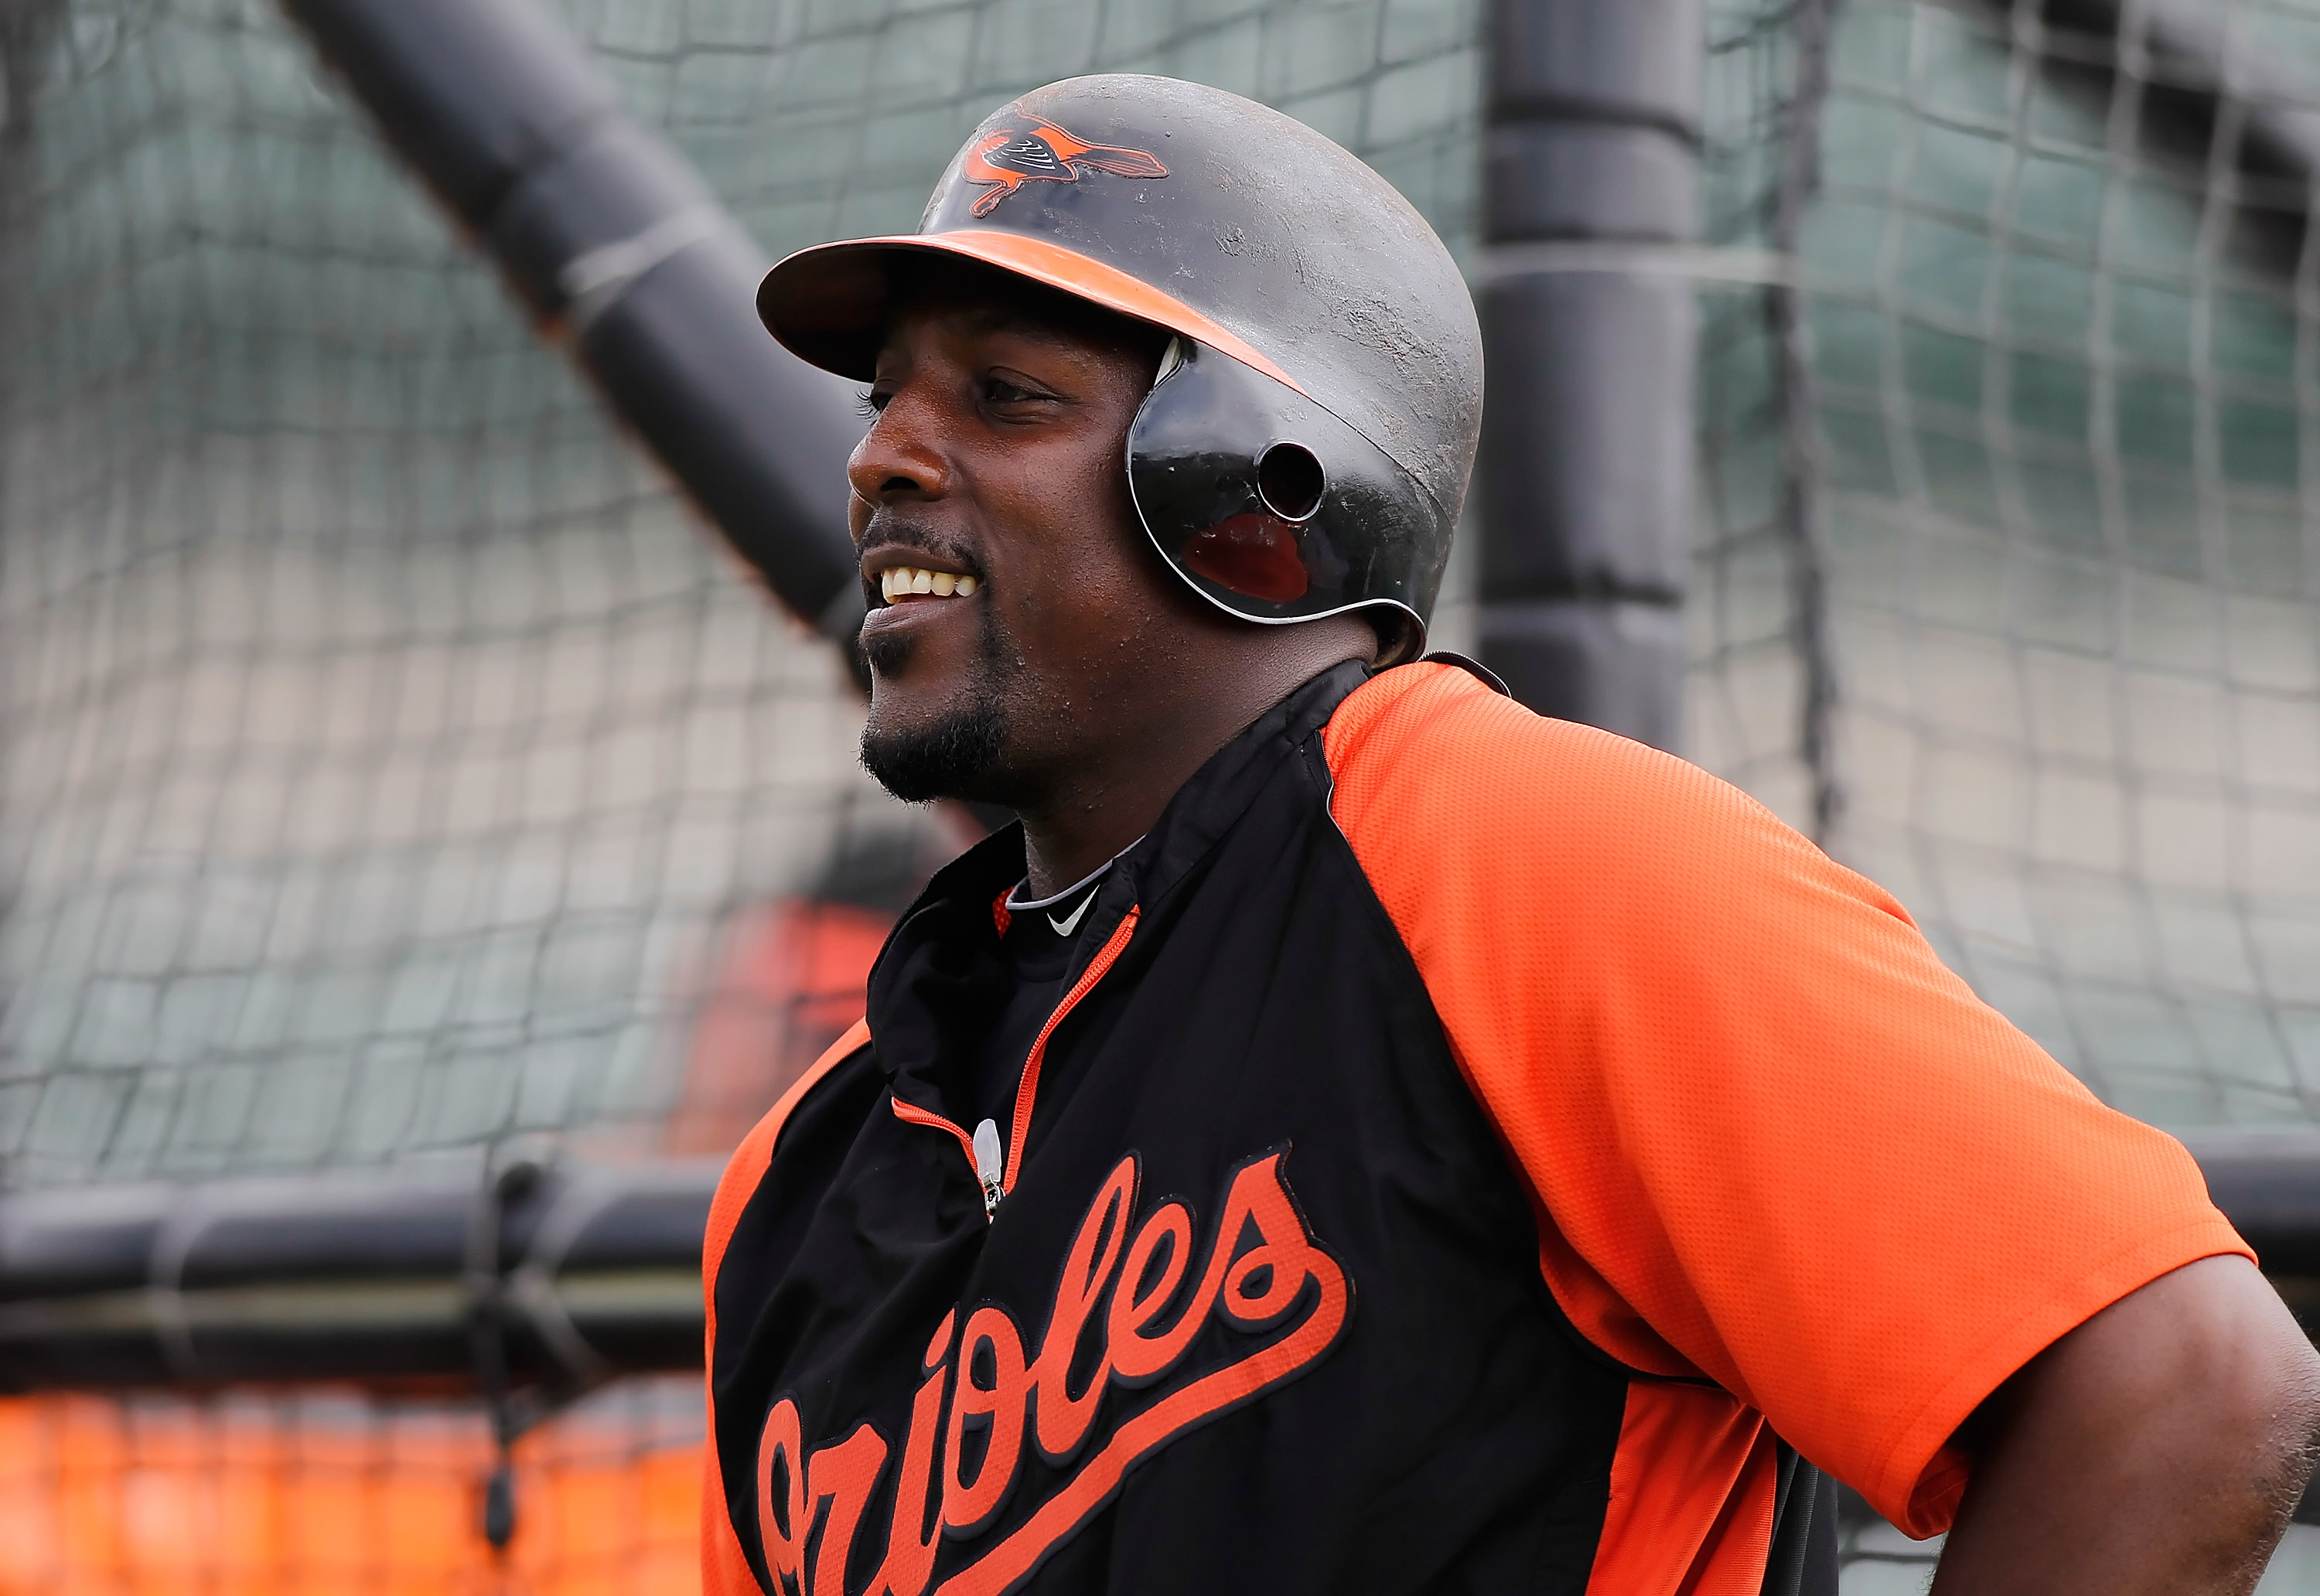 SARASOTA, FL - MARCH 05:  Designated hitter Vladimir Guerrero #27 of the Baltimore Orioles smiles during batting practice just before the start of the Grapefruit League Spring Training Game against the Boston Red Sox at Ed Smith Stadium on March 5, 2011 i